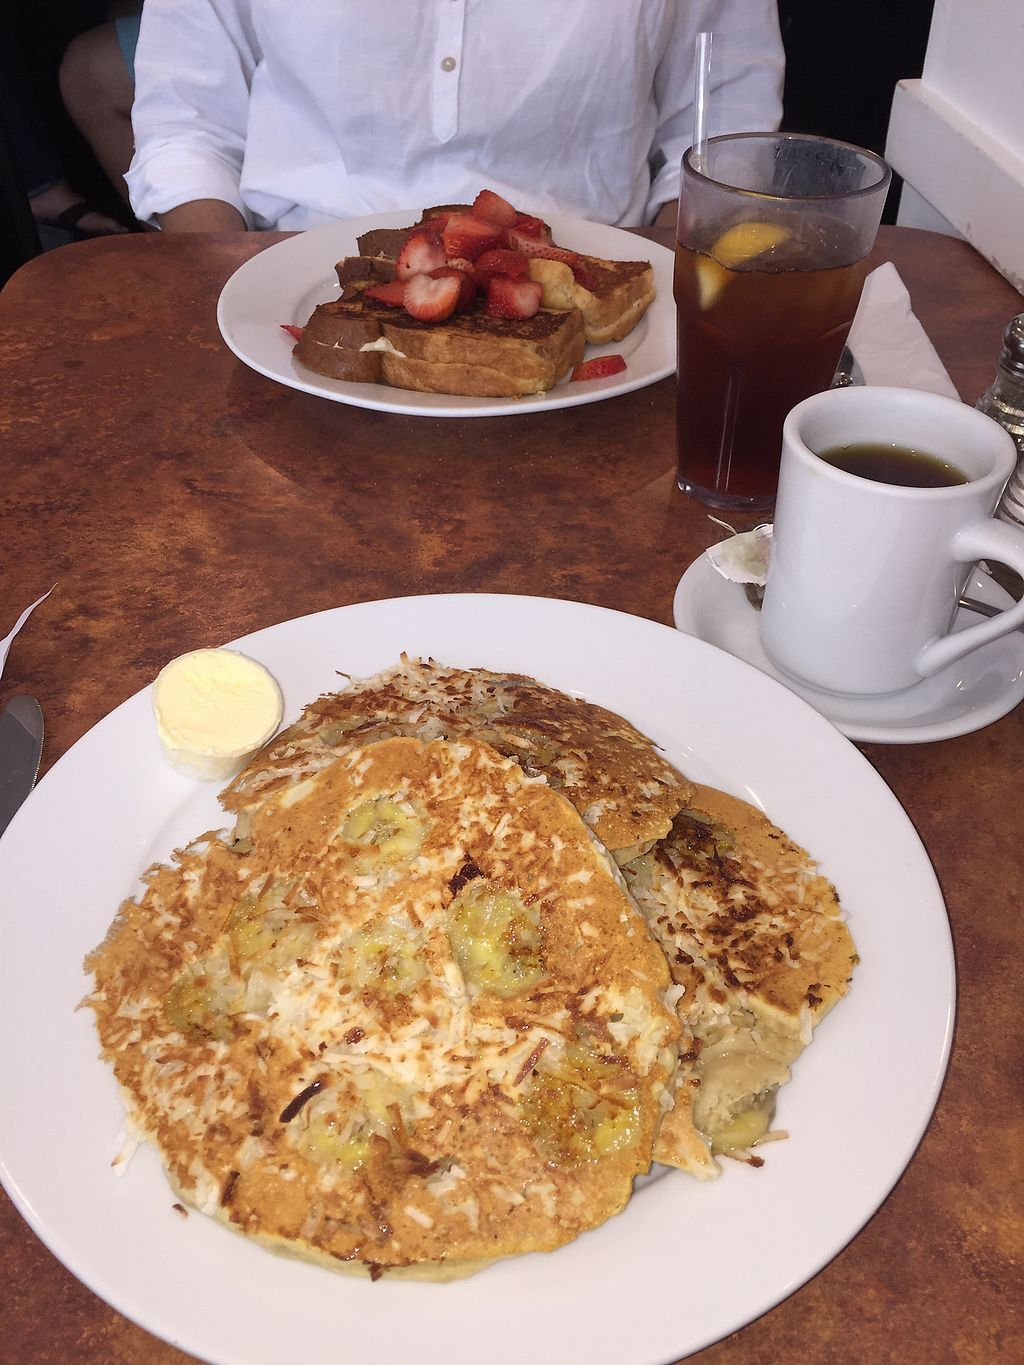 "Photo of Maywood Pancake House  by <a href=""/members/profile/Lizziebenson"">Lizziebenson</a> <br/>vegan banana coconut pancakes  <br/> August 28, 2017  - <a href='/contact/abuse/image/58273/298267'>Report</a>"